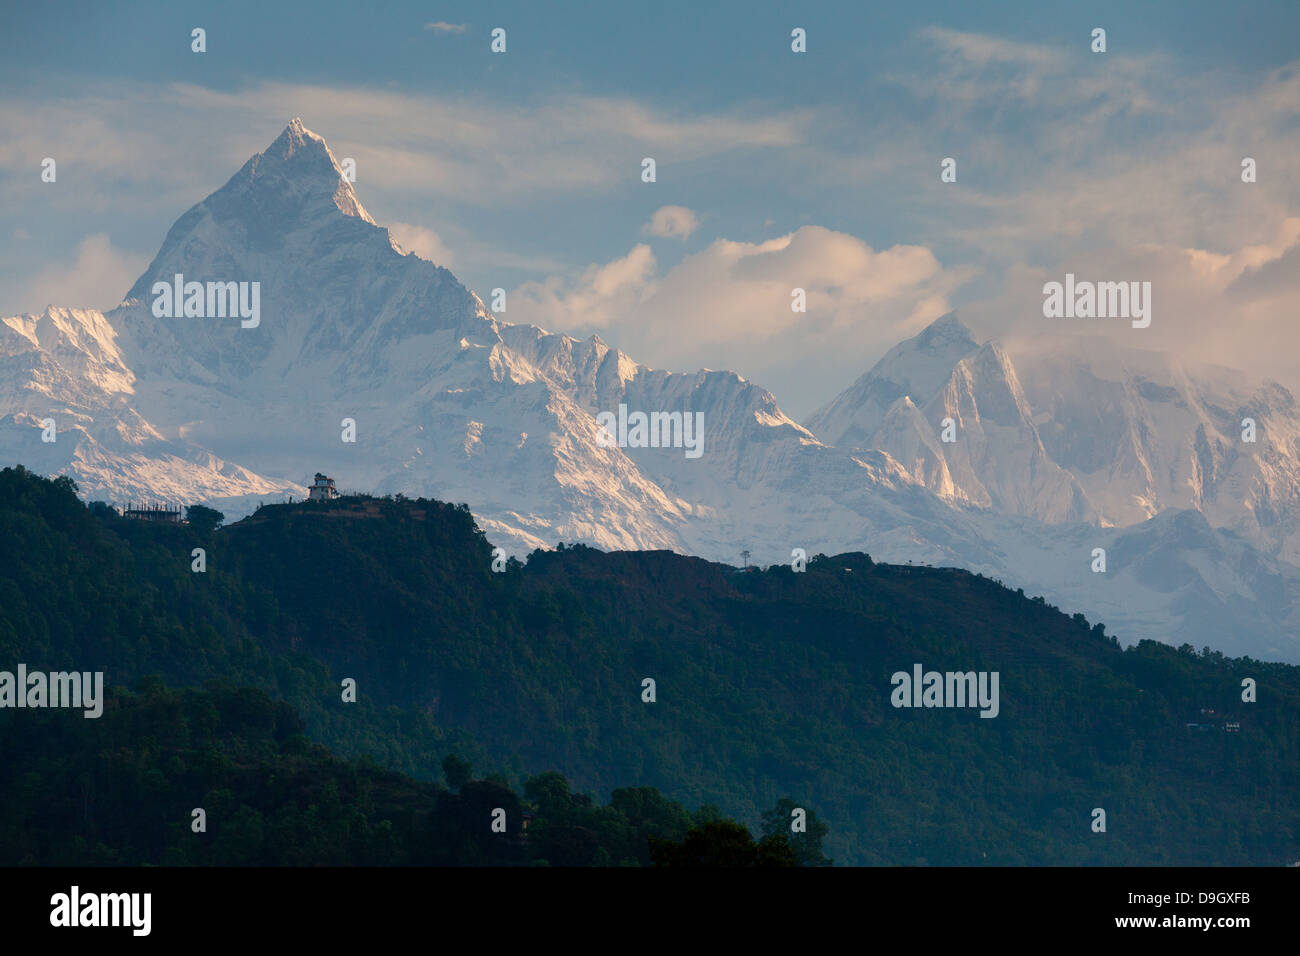 Early morning view of Machapuchare from Pokhara Nepal - Stock Image